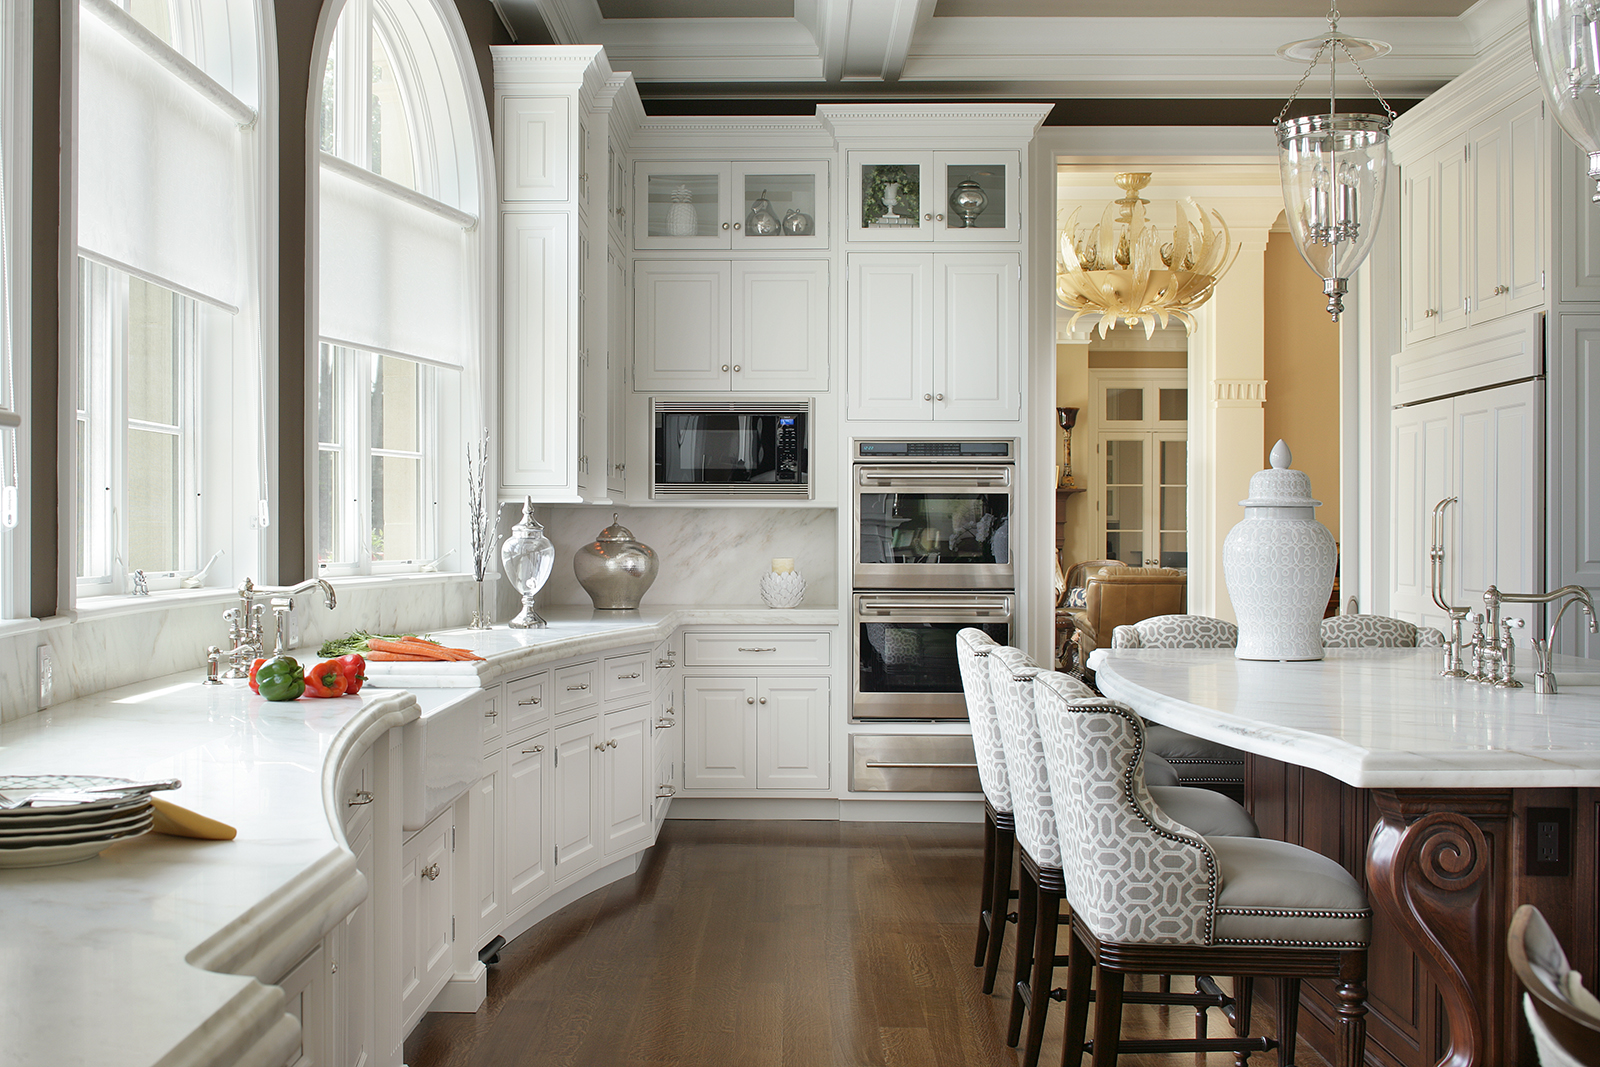 Custom Kitchen Design by Lisa.jpg